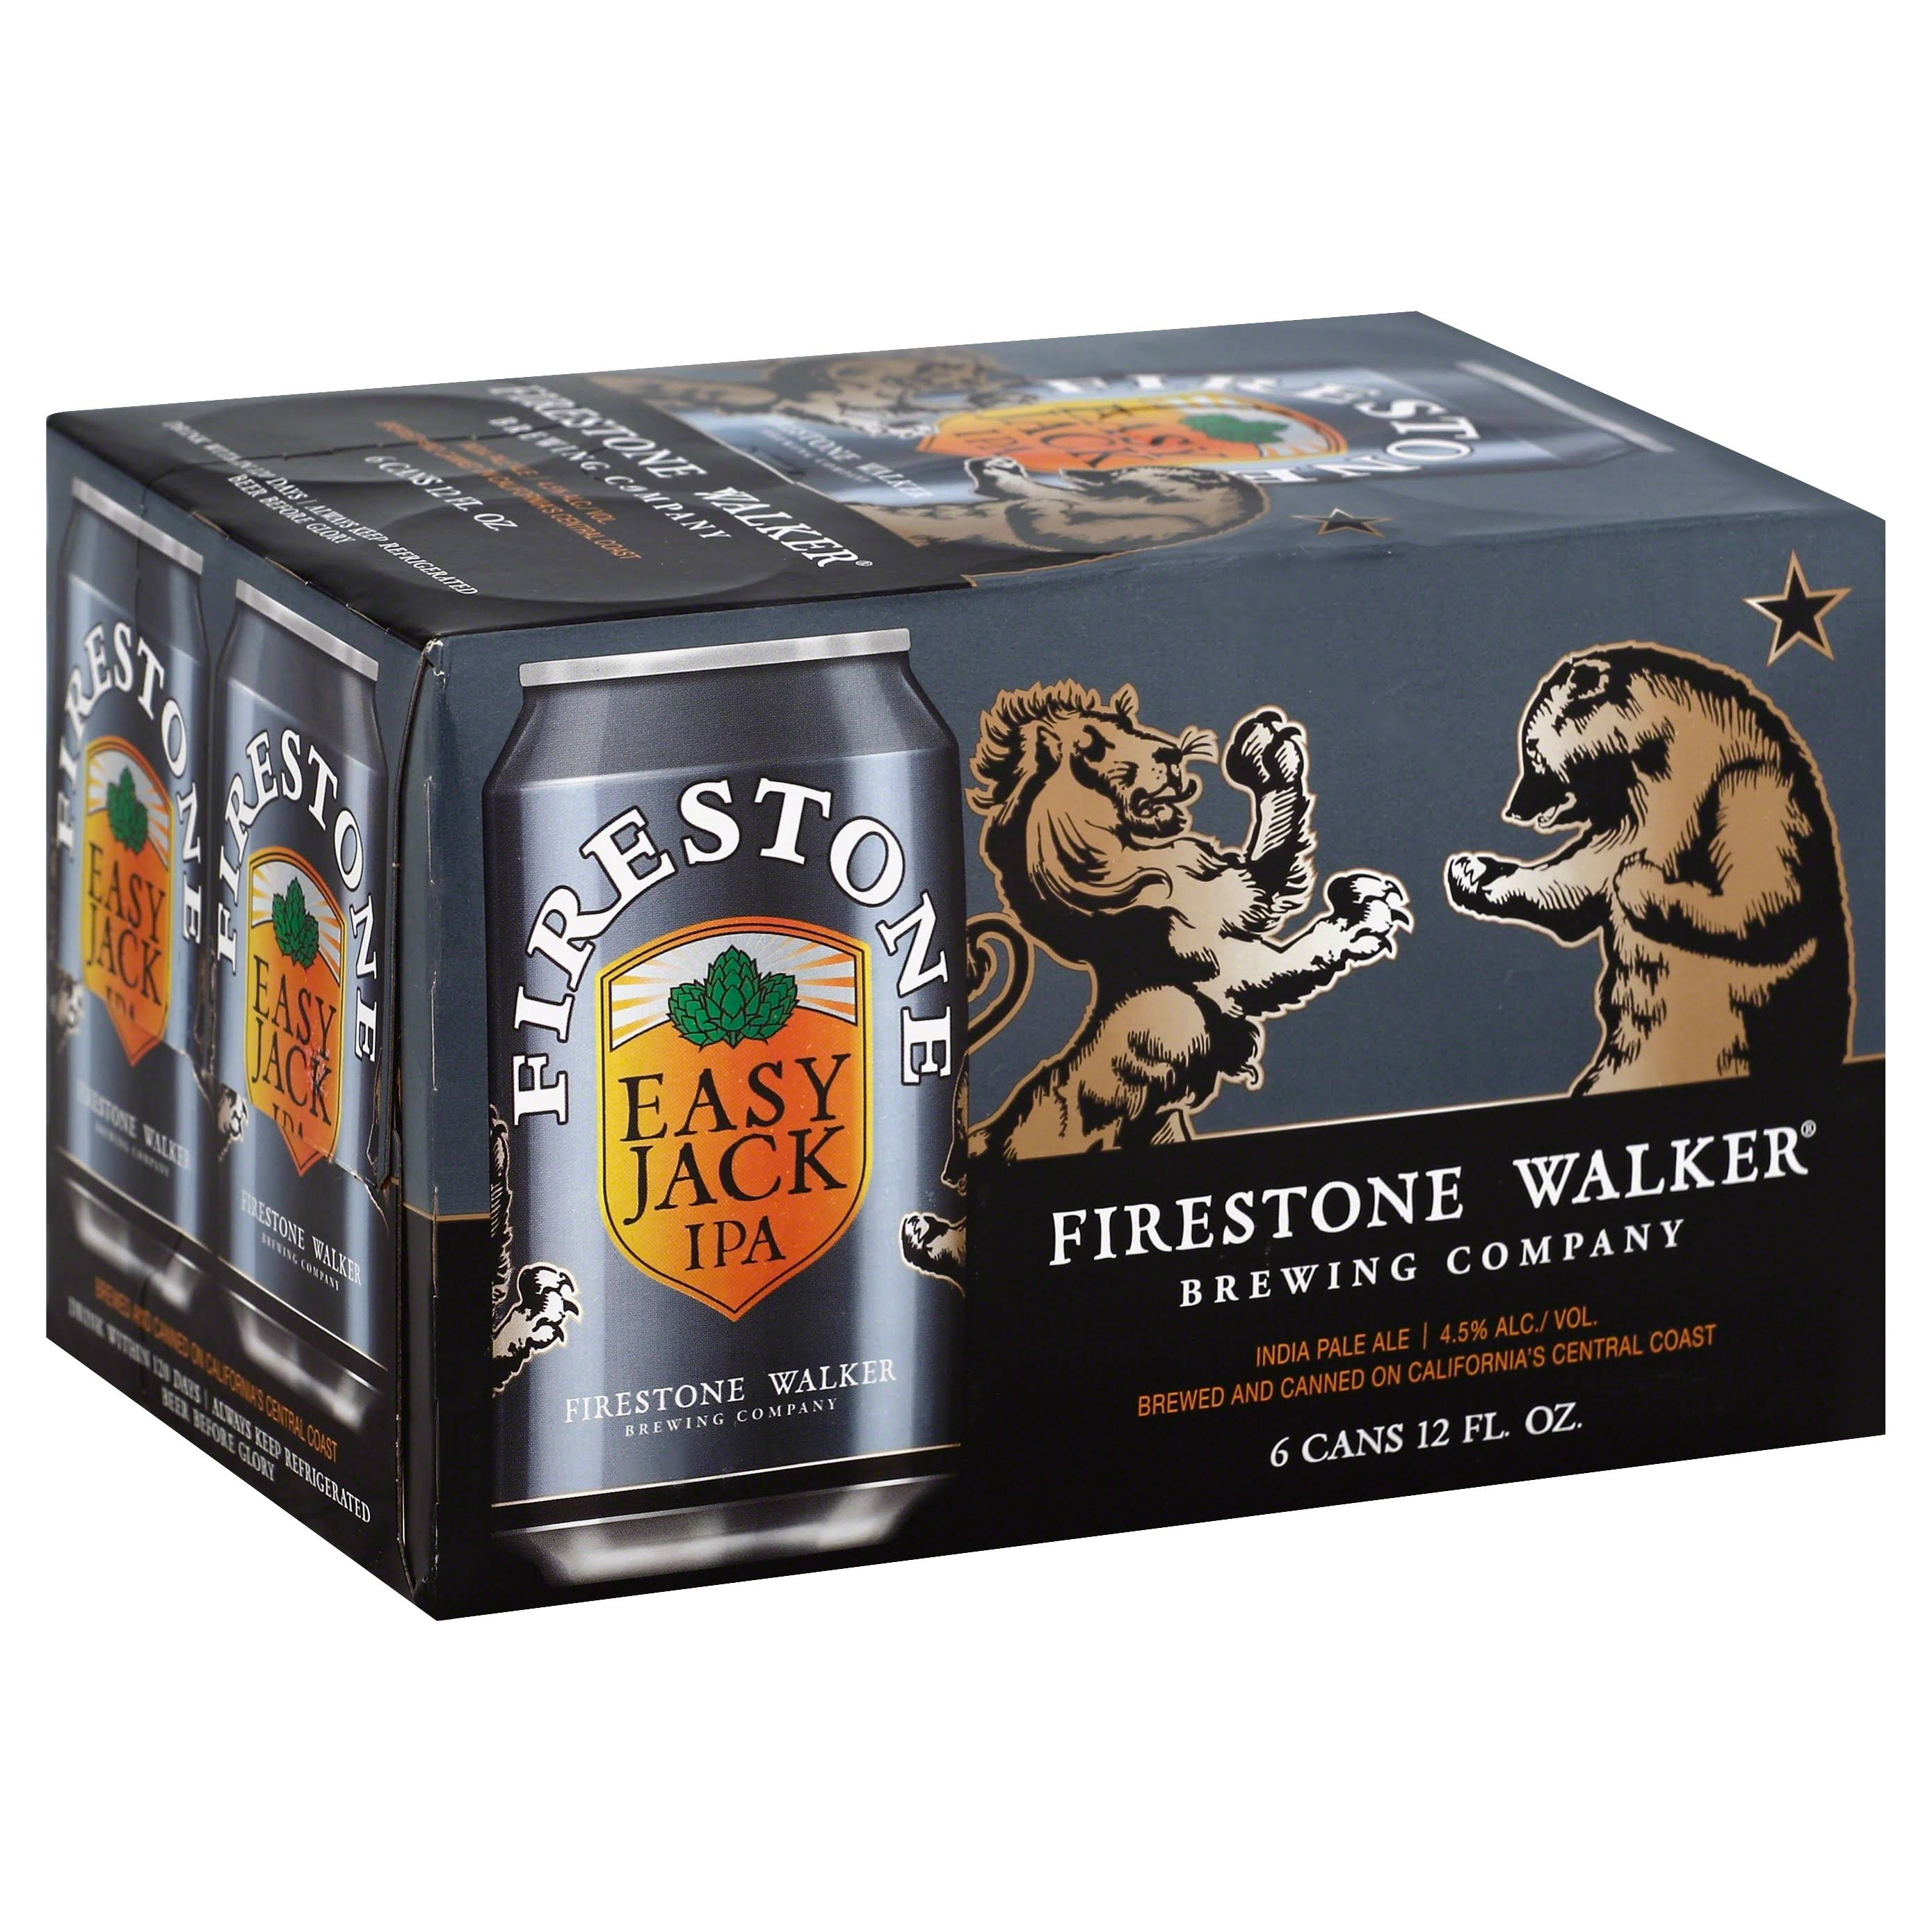 Firestone Walker Beer, India Pale Ale, Easy Jack IPA - 6 pack, 12 fl oz cans